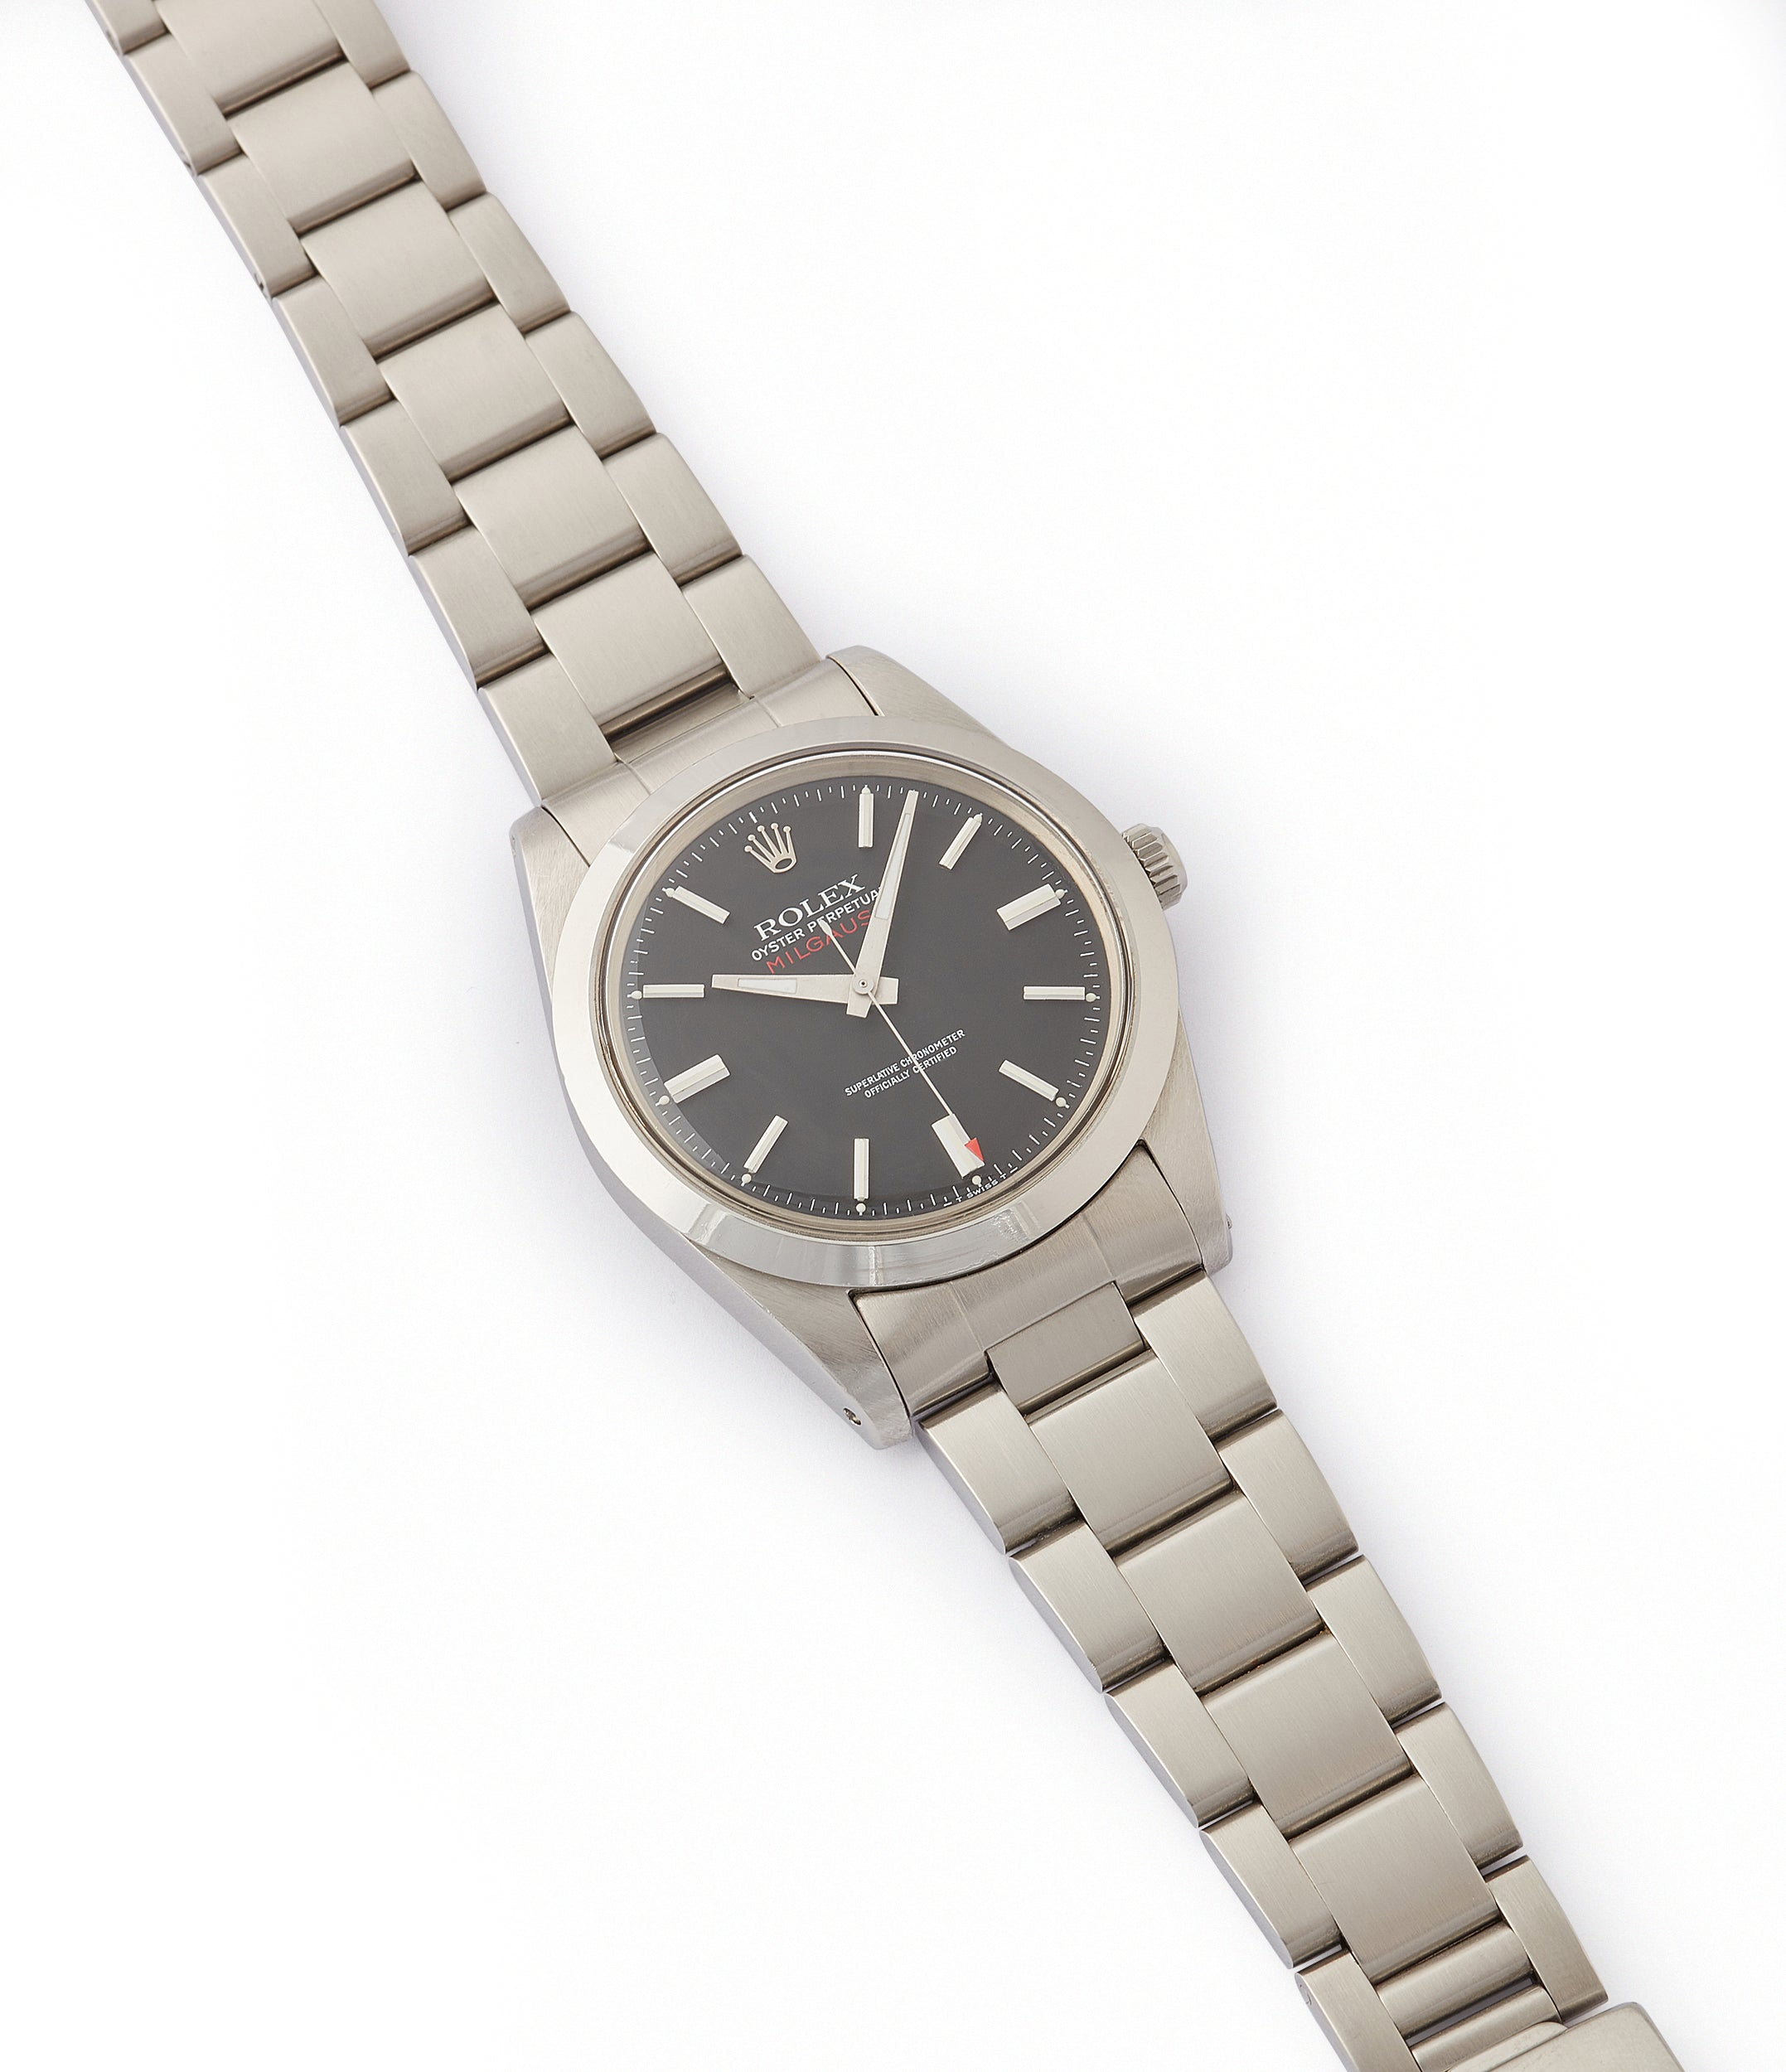 buying vintage Rolex Milgauss 1019 steel antimagnetic tool watch for sale online at A Collected Man London UK specialist rare vintage Rolex watches